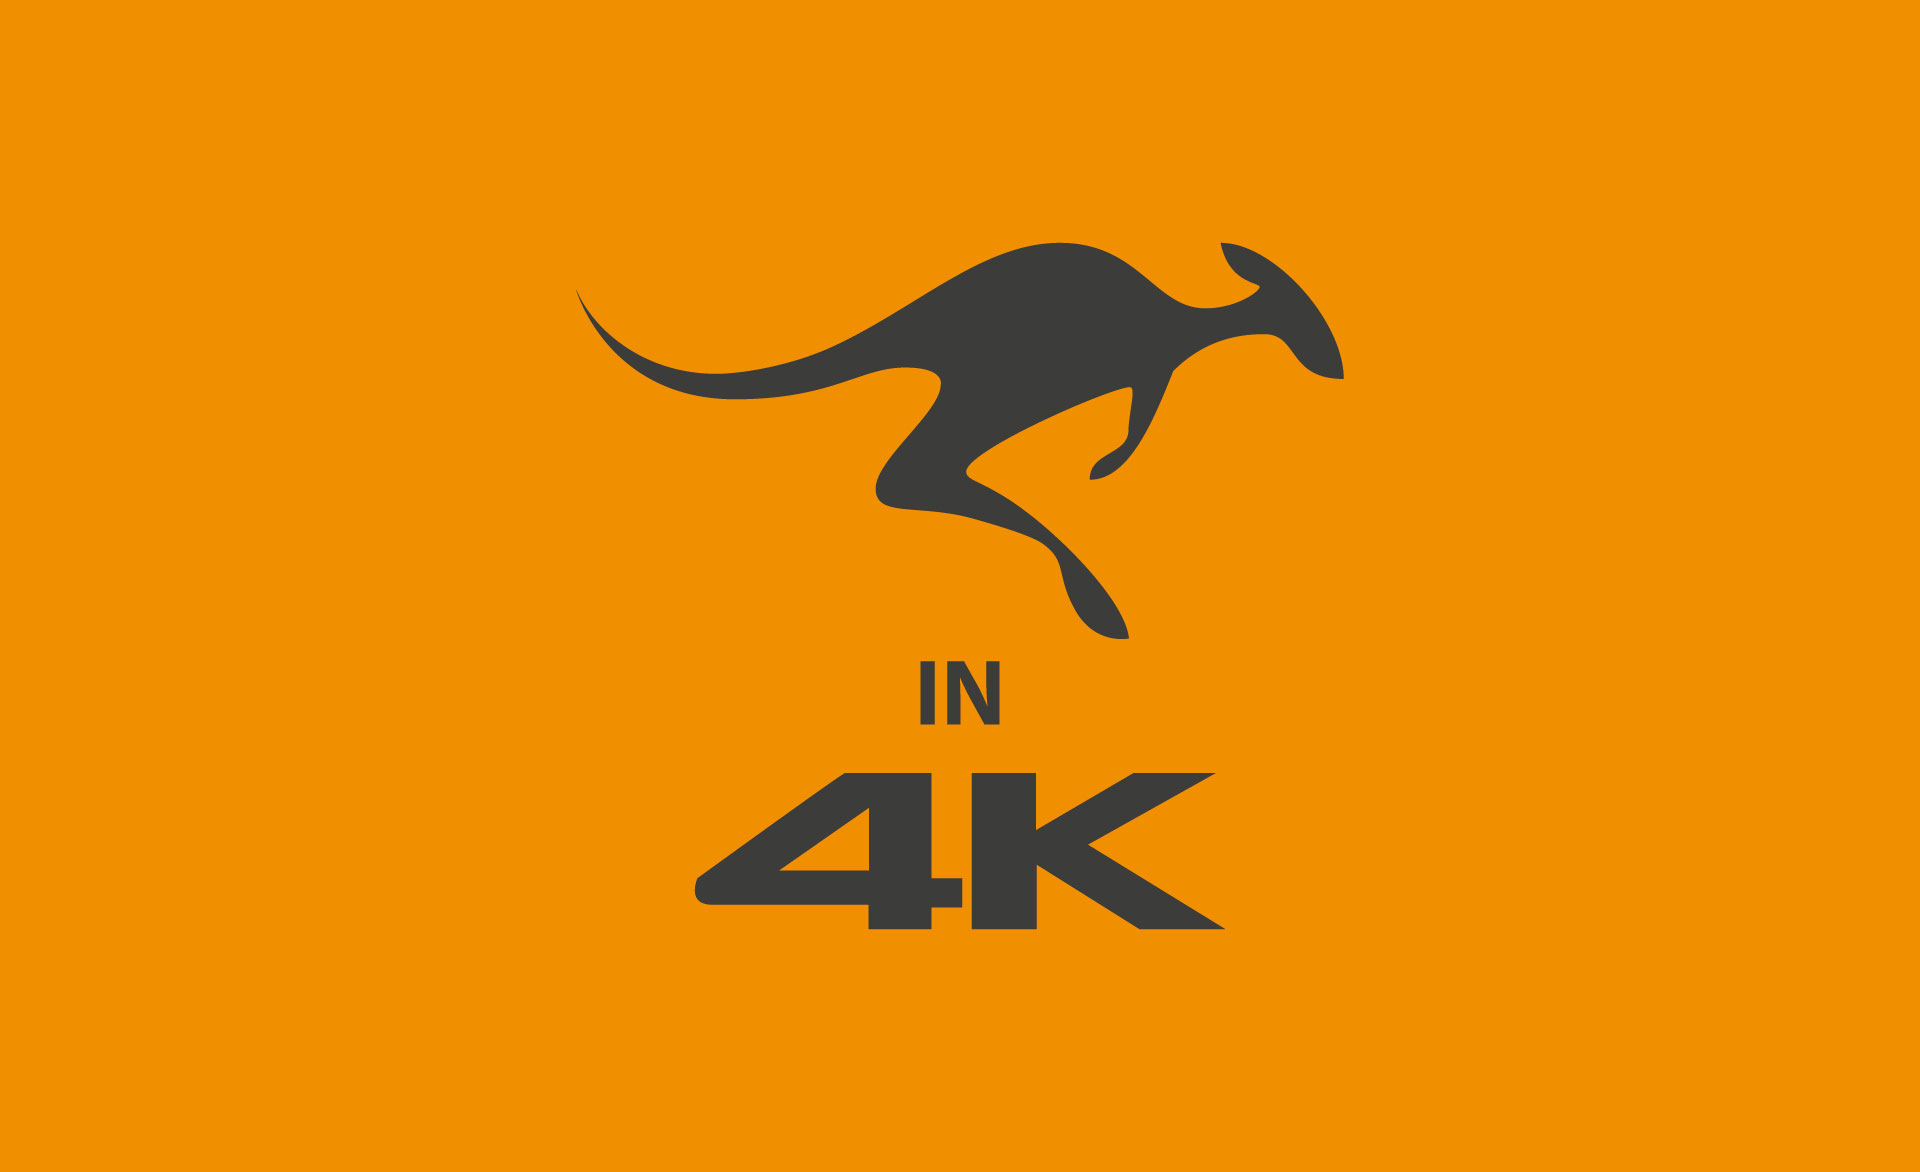 KANGAROO Pictures in 4K!